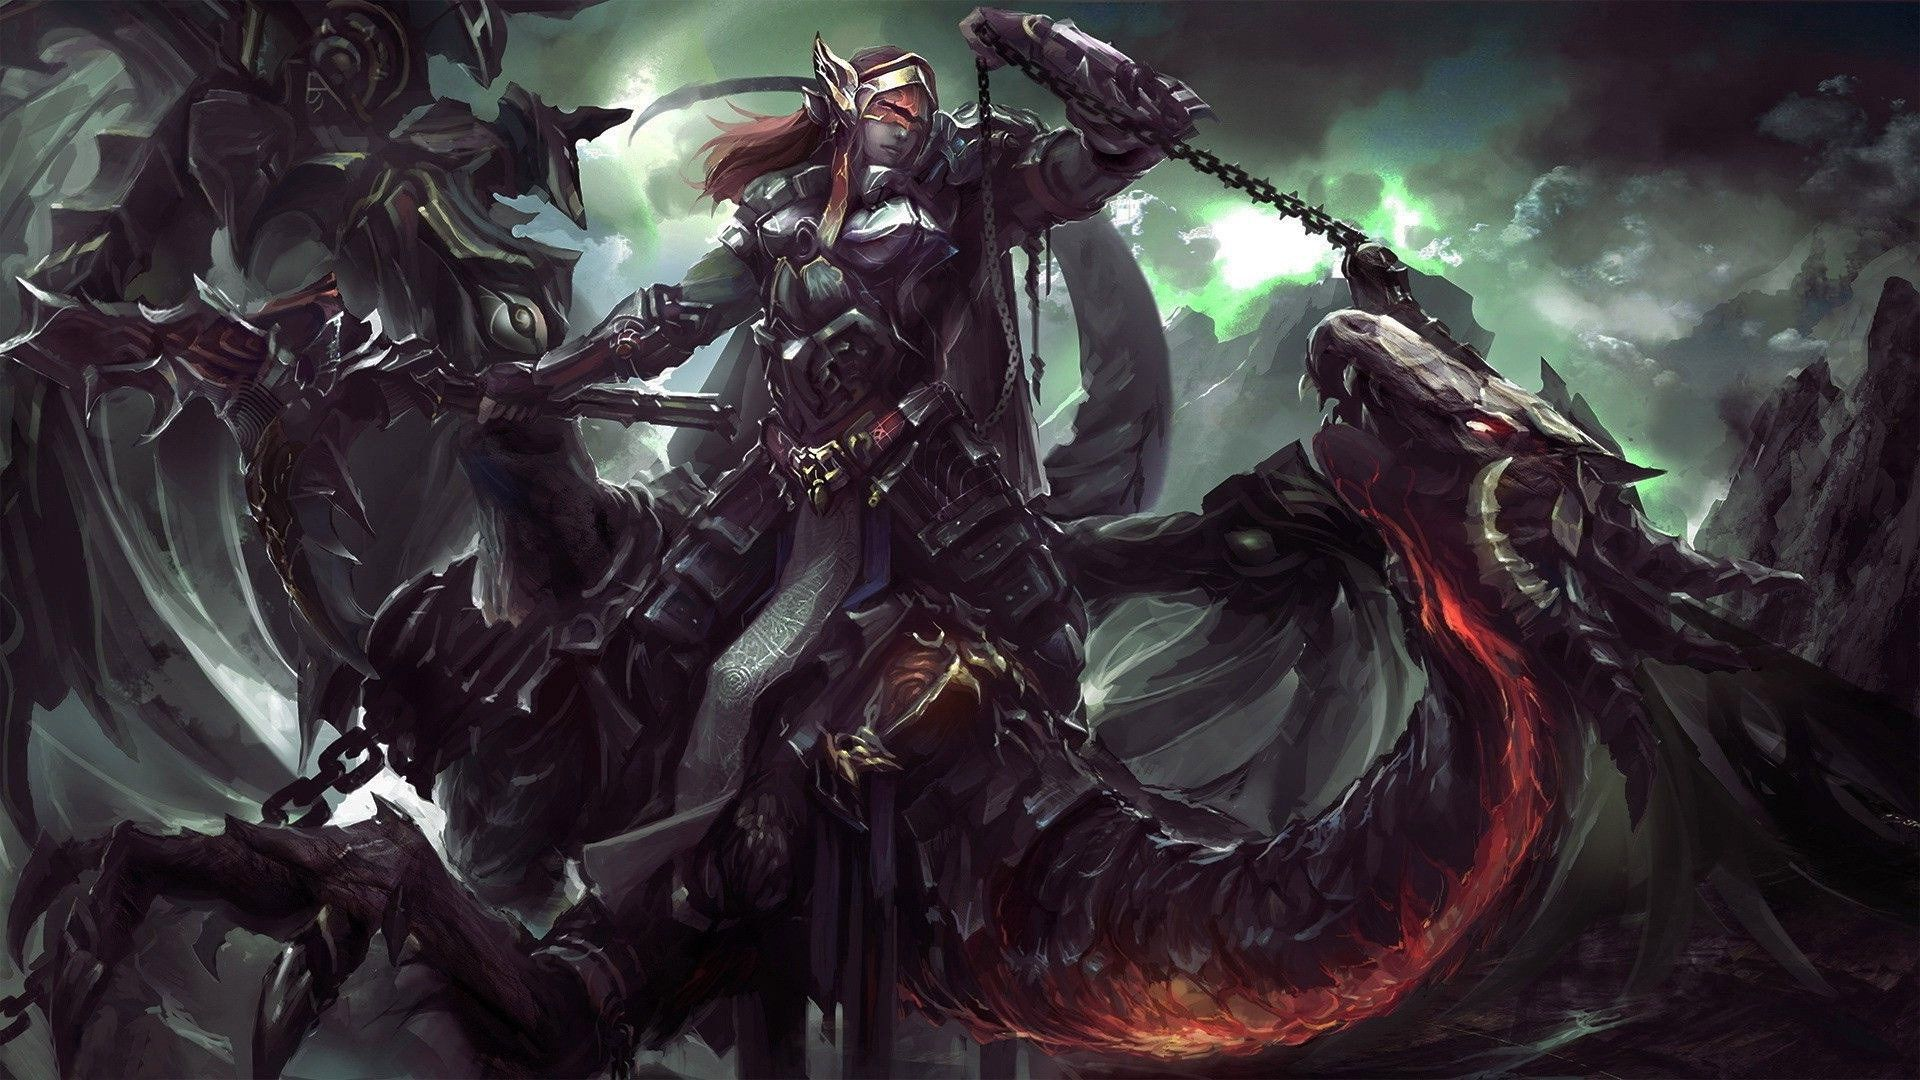 Awesome dragon nest hd wallpaper free download 16001050 dragon awesome dragon nest hd wallpaper free download 16001050 dragon nest wallpaper 57 wallpapers voltagebd Image collections